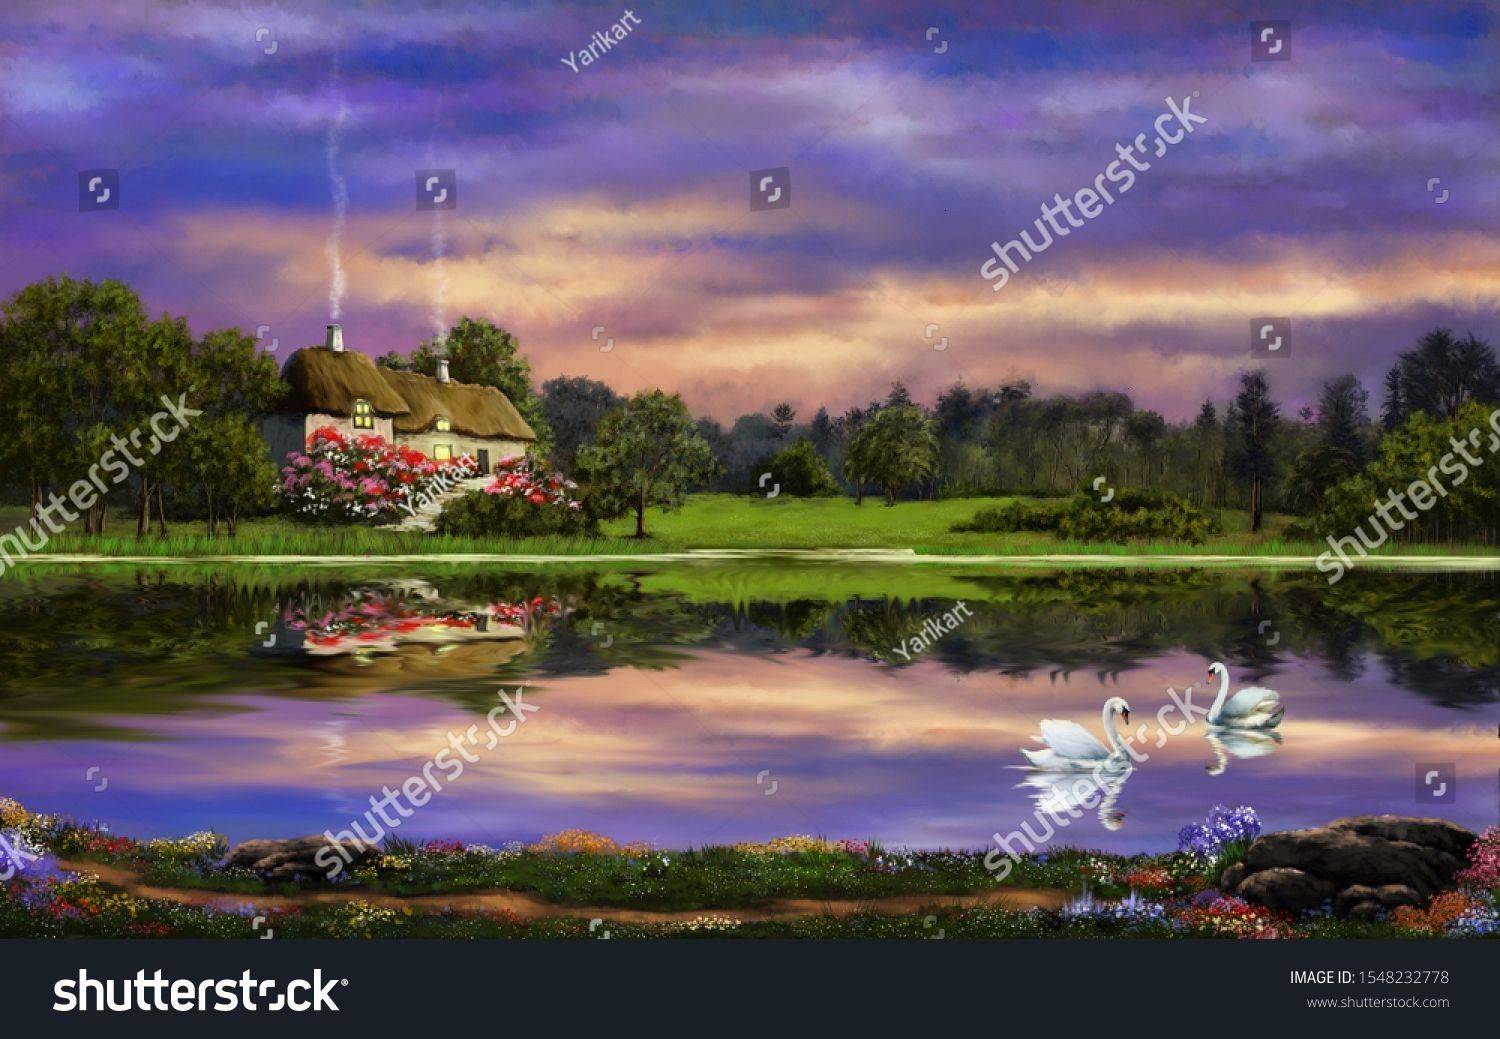 paintings rural landscape with house among the trees on the shore of a forest lake countryside landscape with reflection on the waterFine art Oil paintings rural landscap...